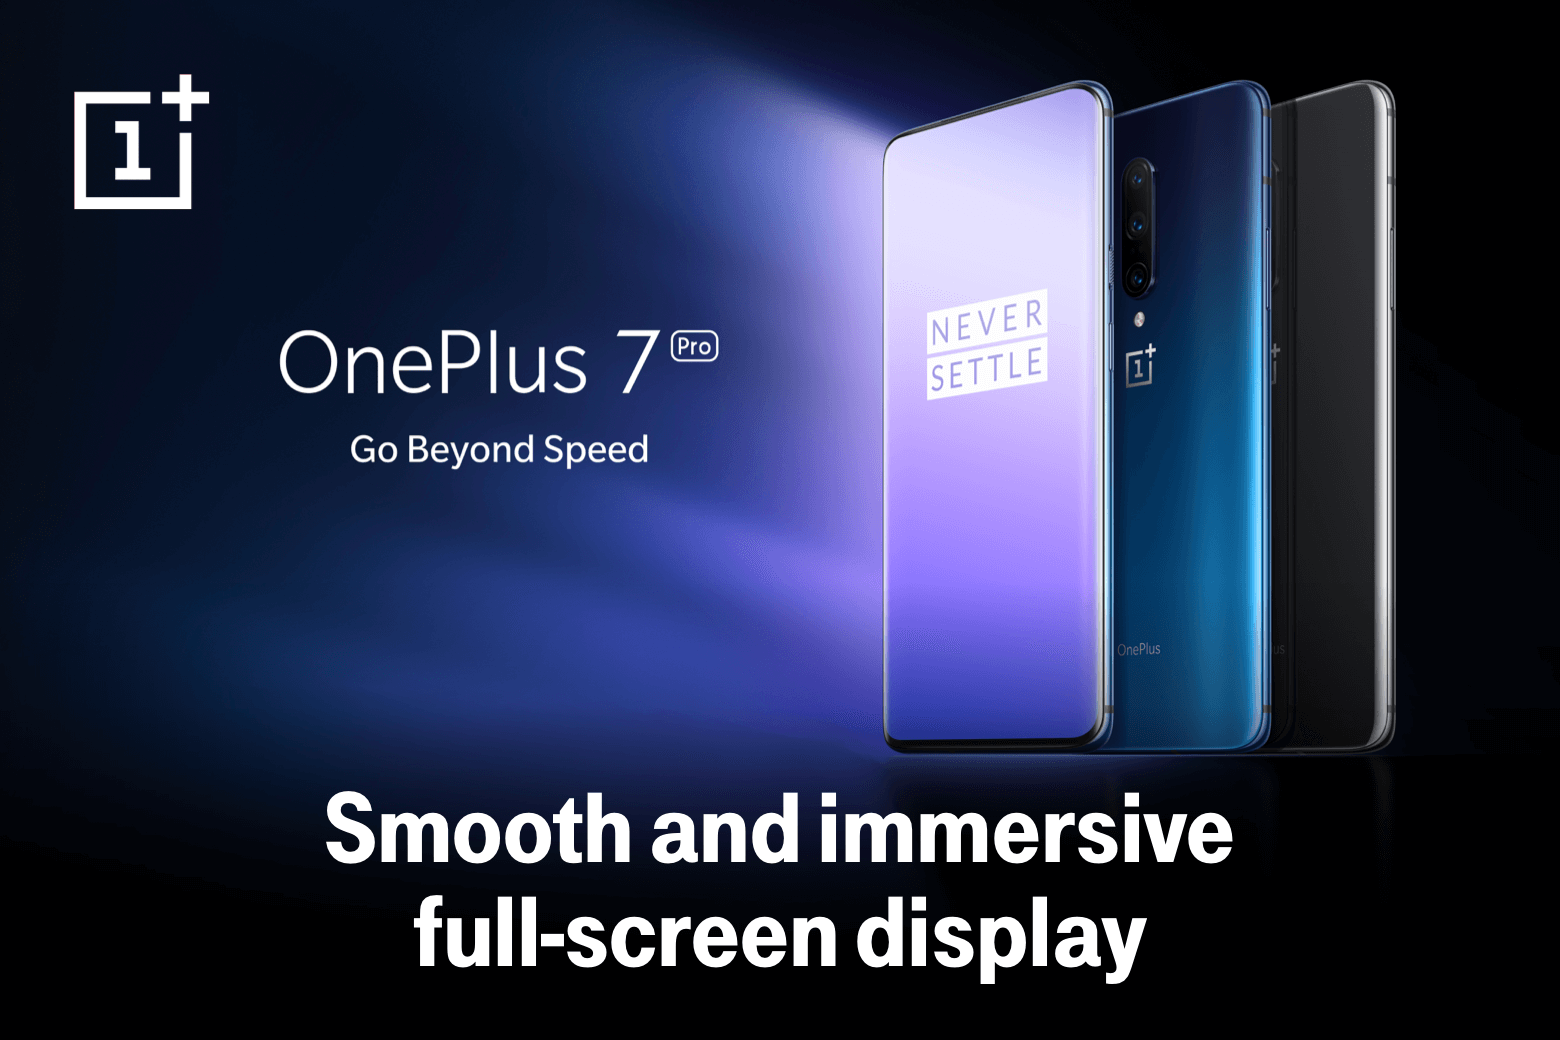 OnePlus 7 Pro. Go beyond Speed. Smooth and immersive full-screen display.